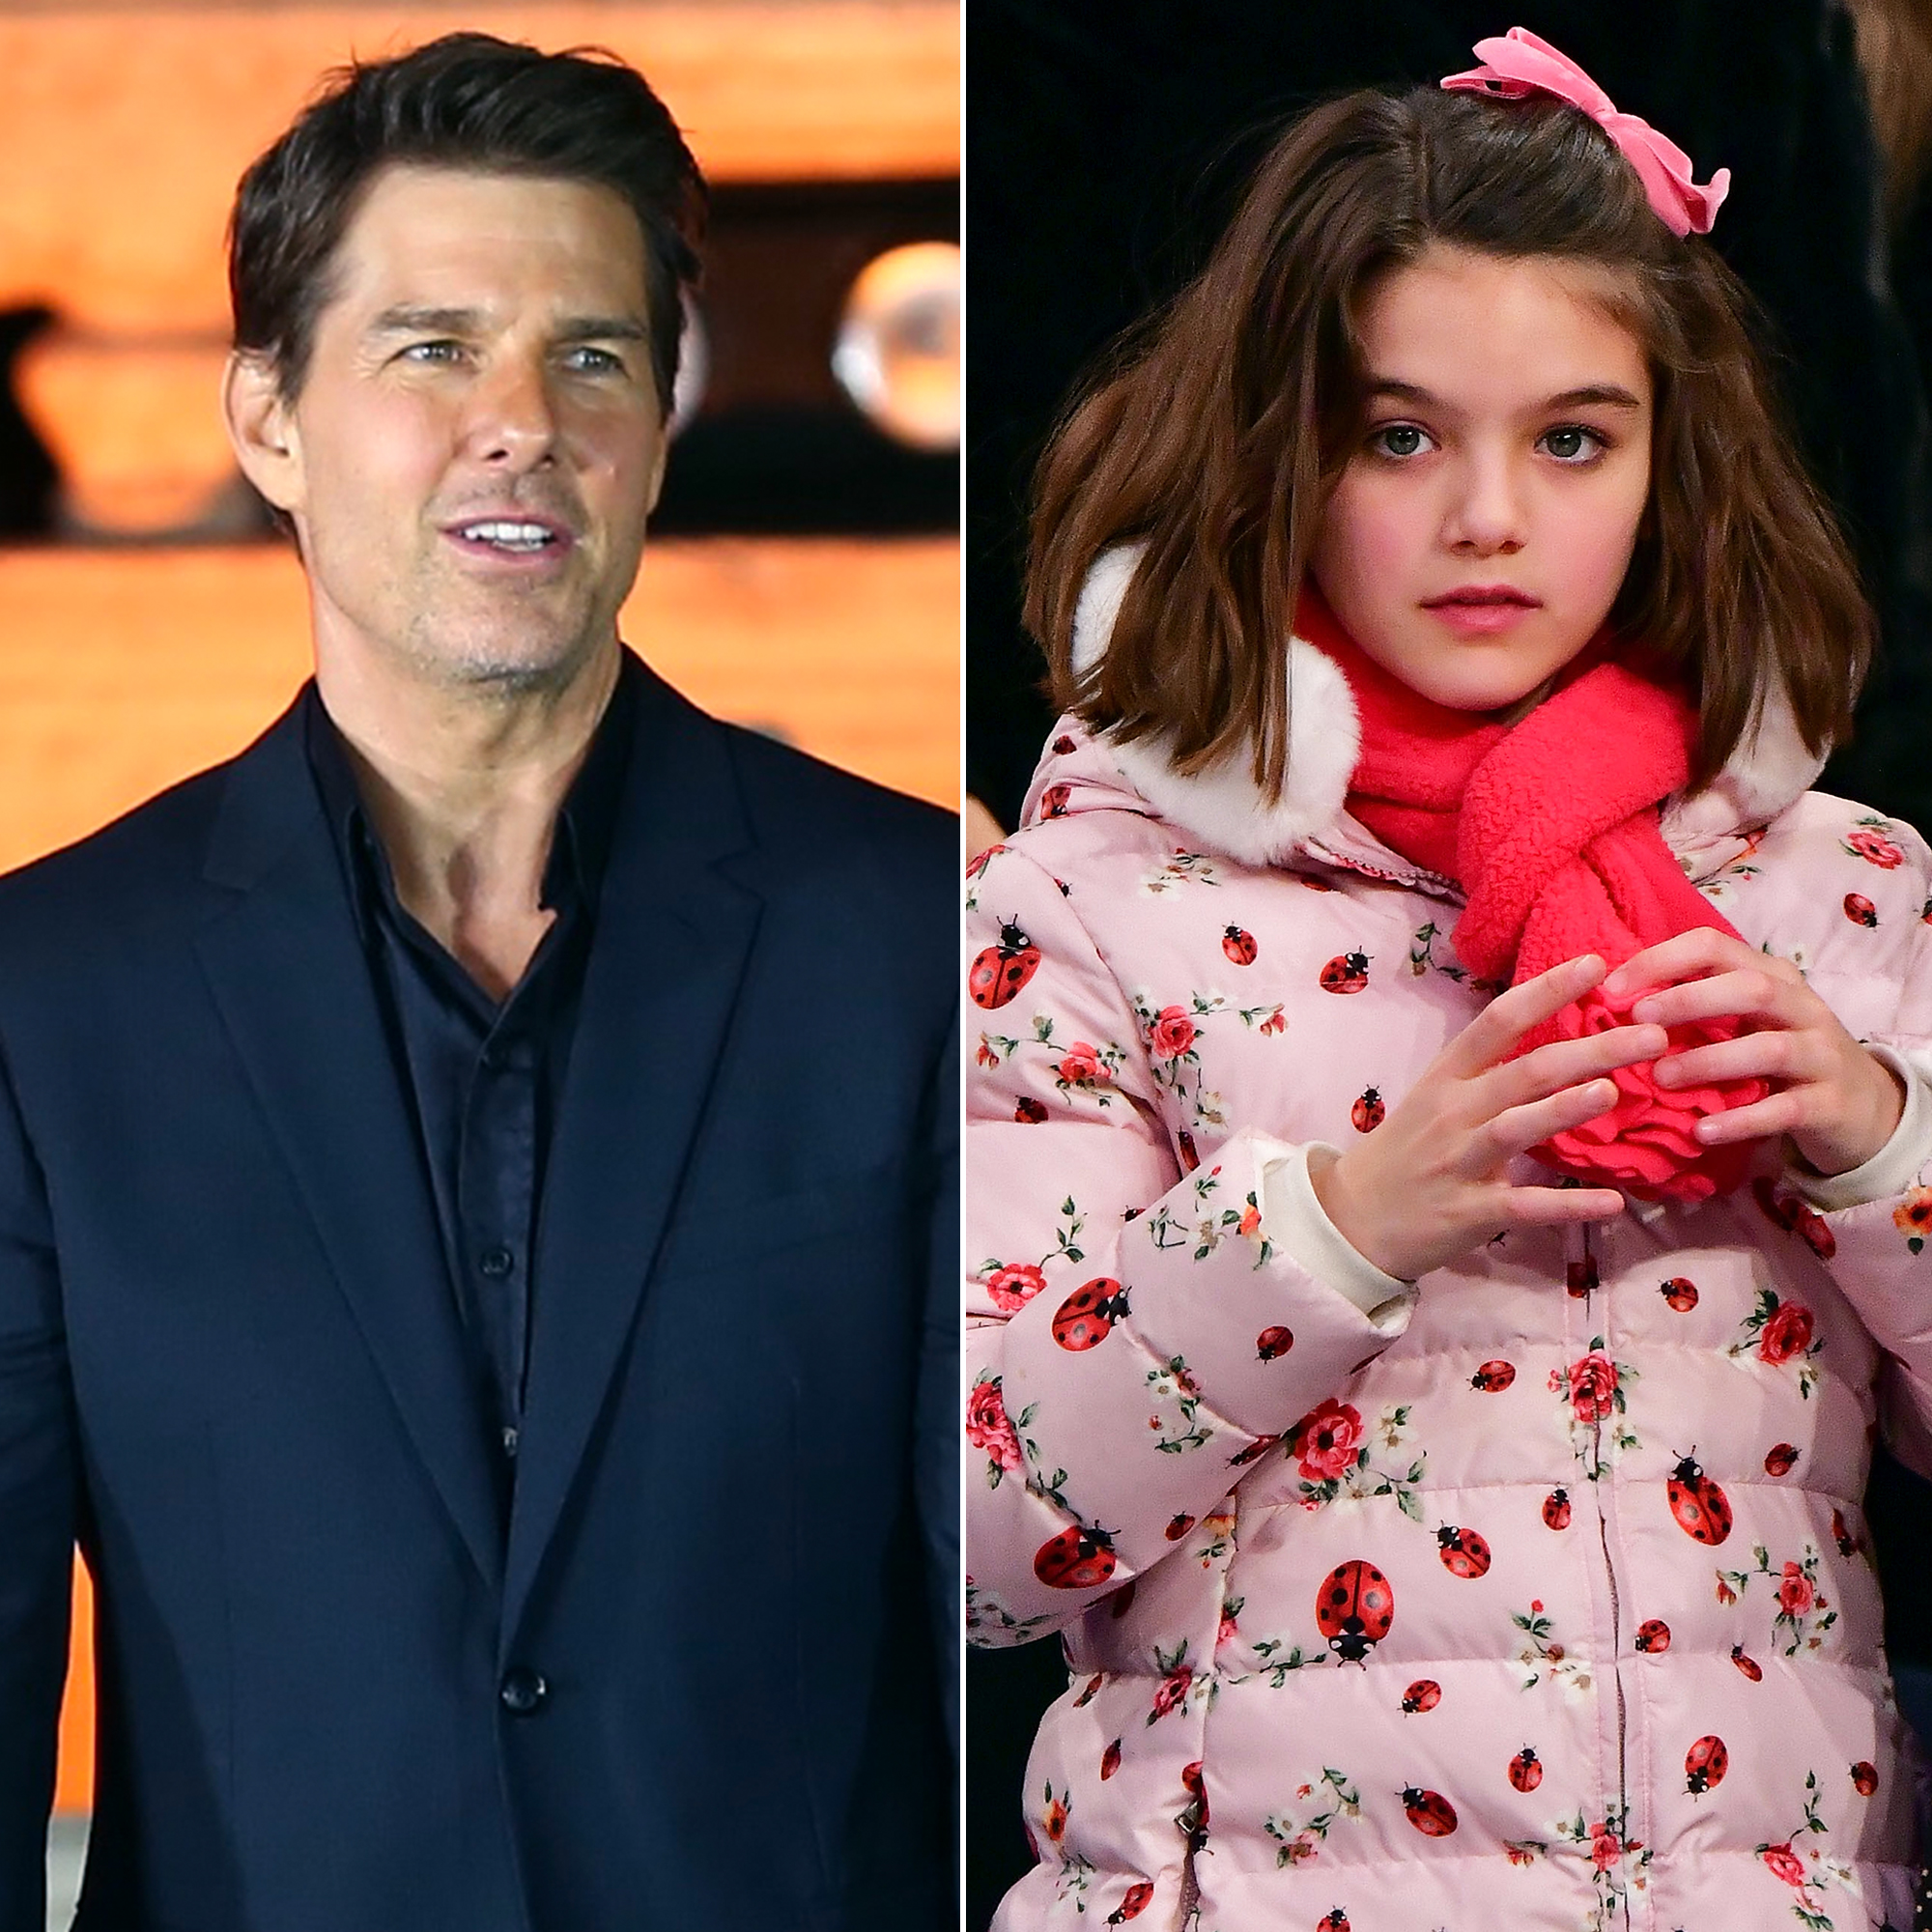 Tom Cruise Girlfriend 2020.Tom Cruise Not Allowed To Have Relationship With Daughter Suri